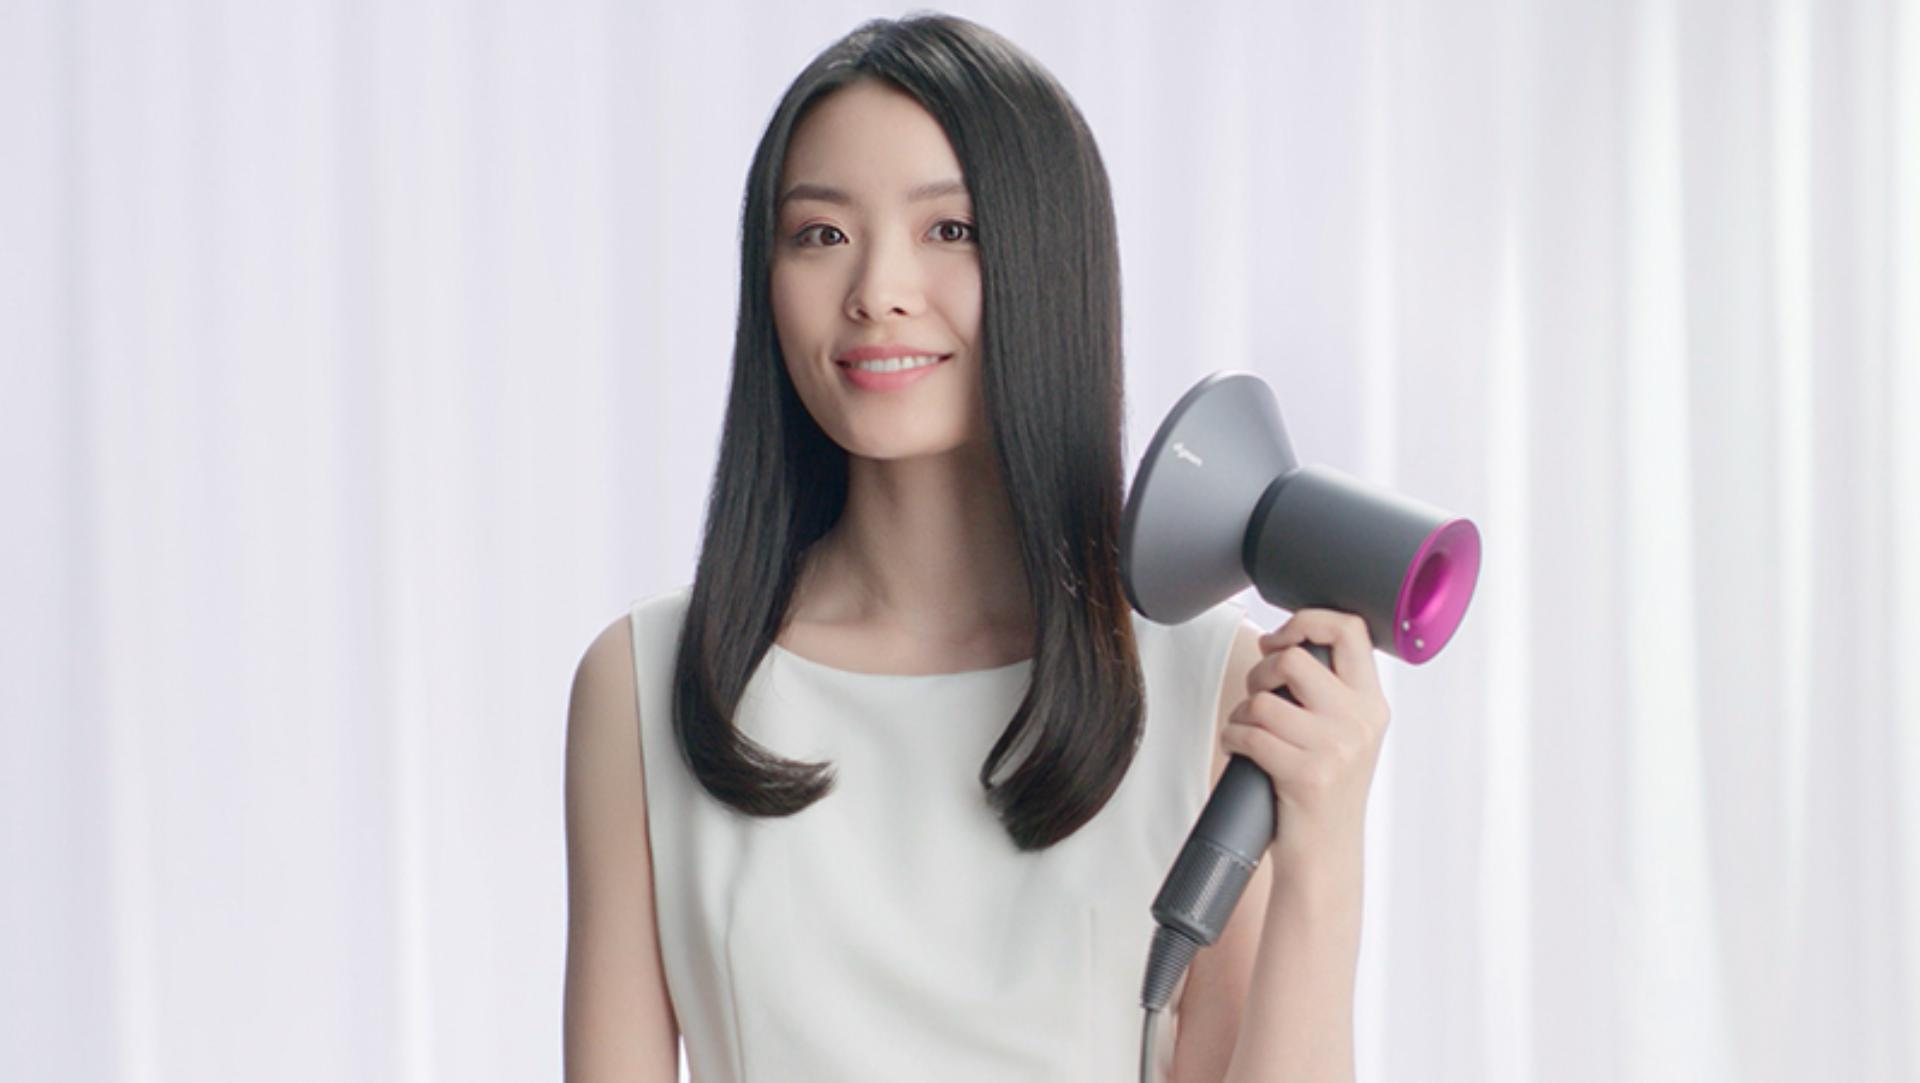 Video about how to use the Dyson Supersonic™ hair dryer Diffuser